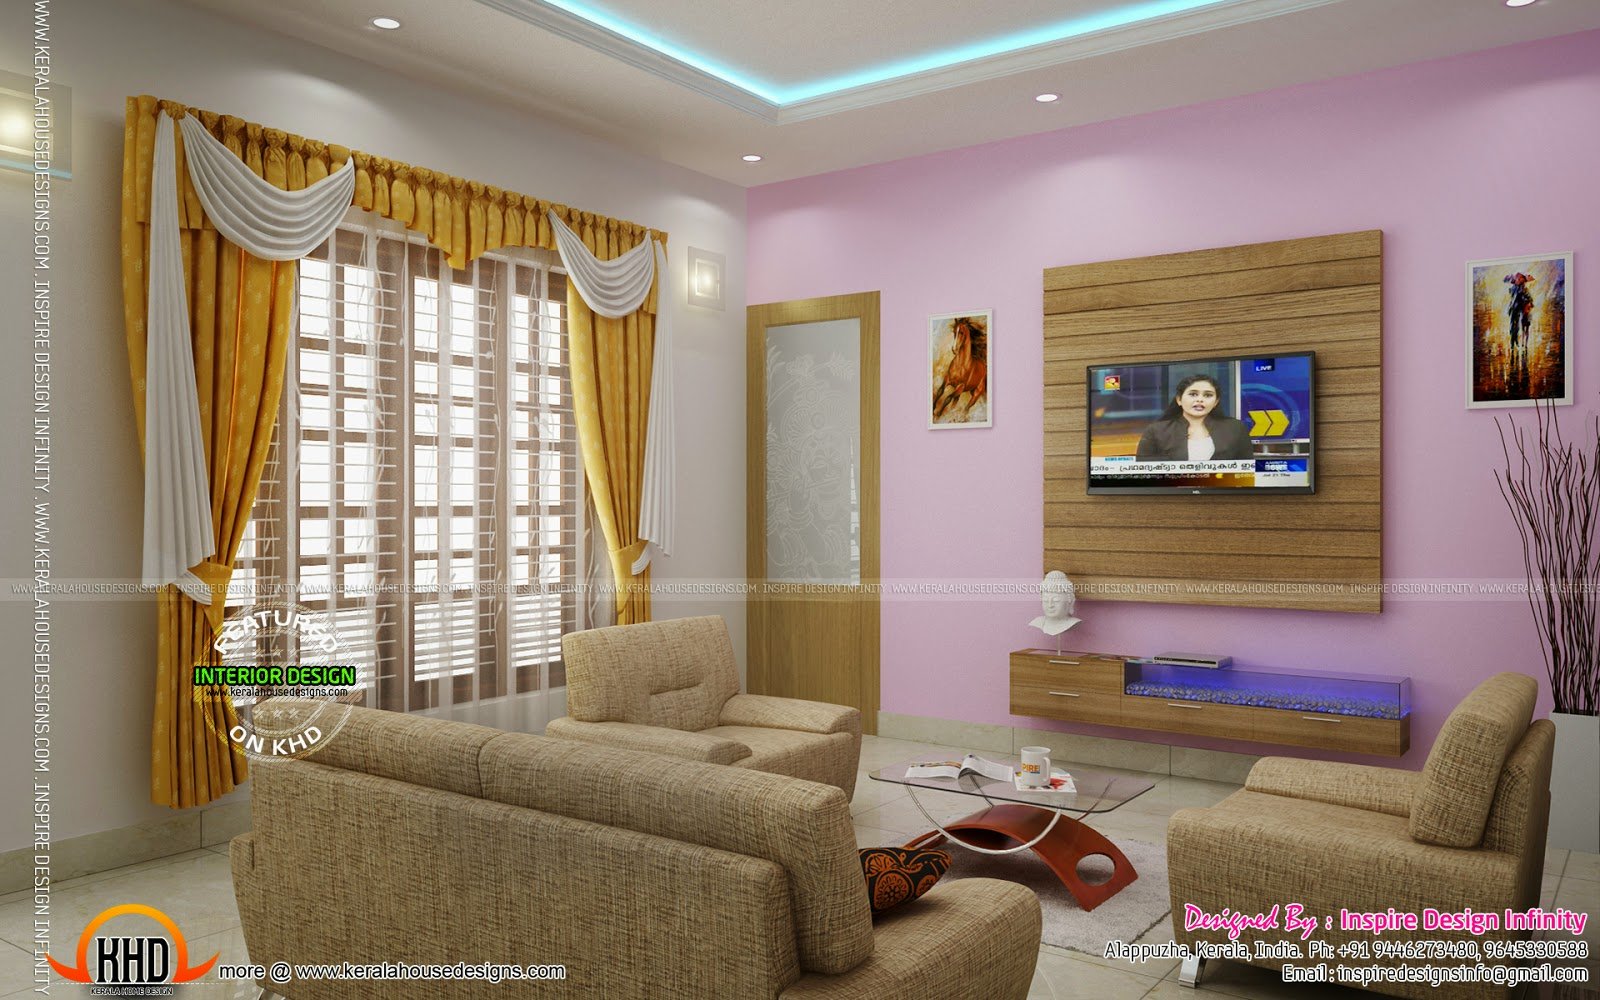 Interior designs by inspire design infinity kerala home for Kerala home interior